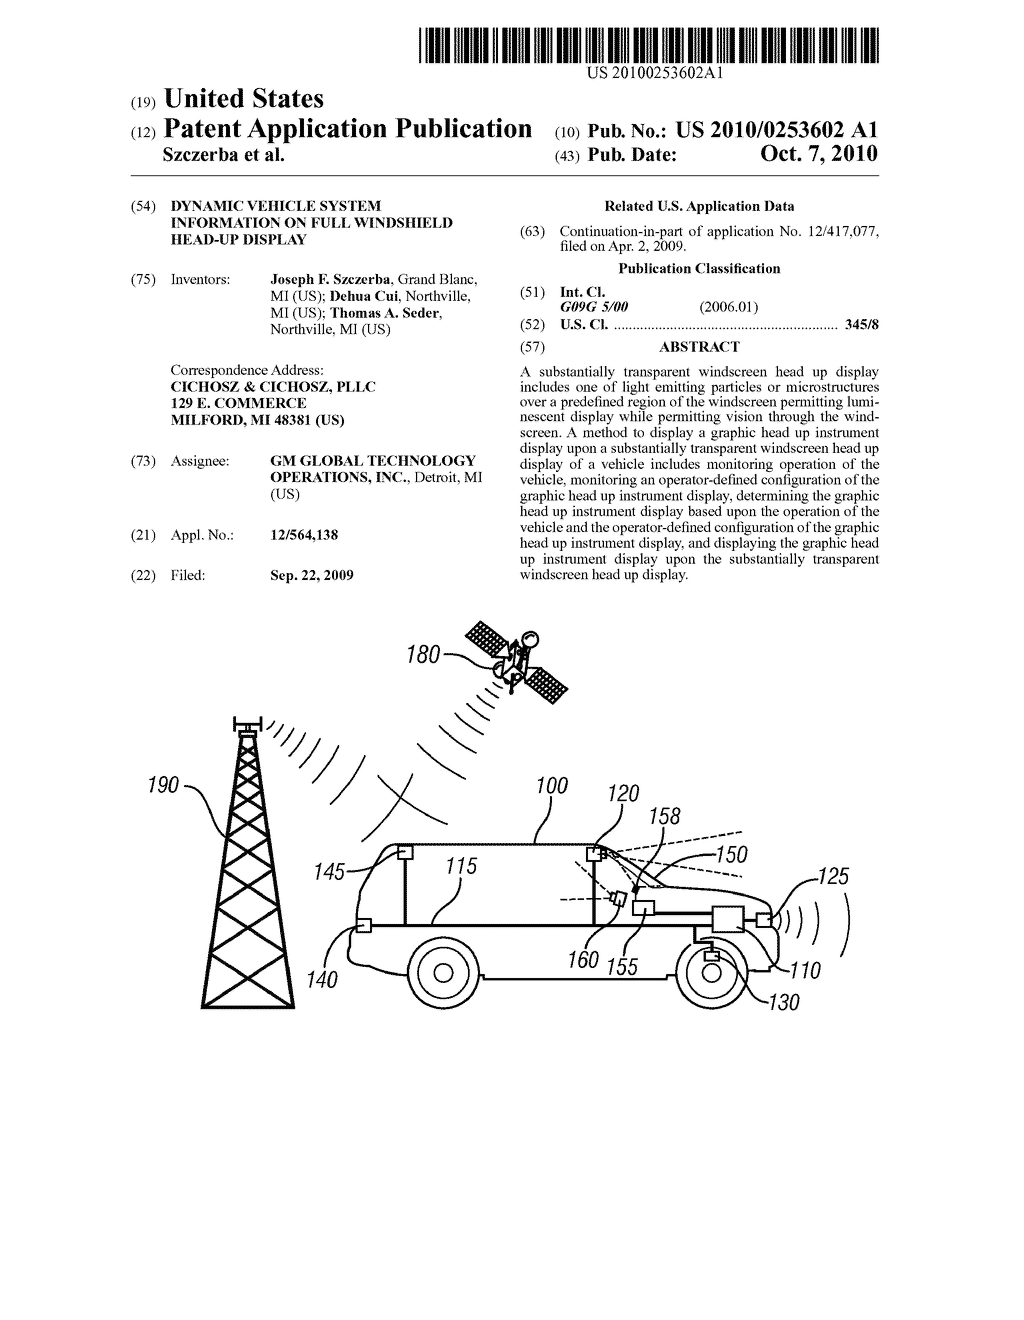 DYNAMIC VEHICLE SYSTEM INFORMATION ON FULL WINDSHIELD HEAD-UP DISPLAY - diagram, schematic, and image 01